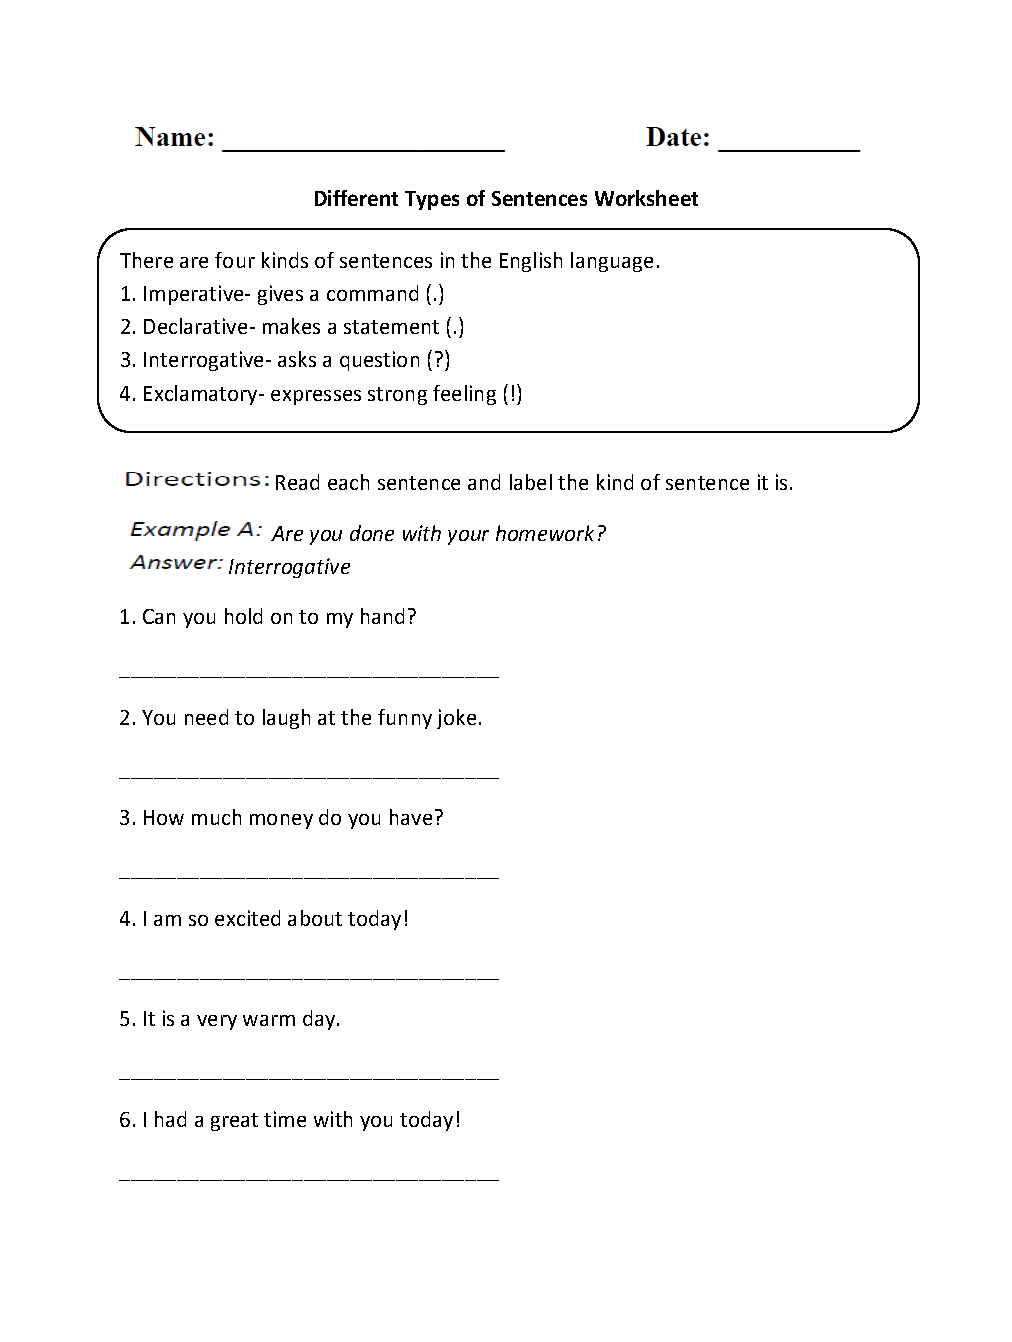 Printables Four Kinds Of Sentences Worksheets sentences worksheets types of different worksheet